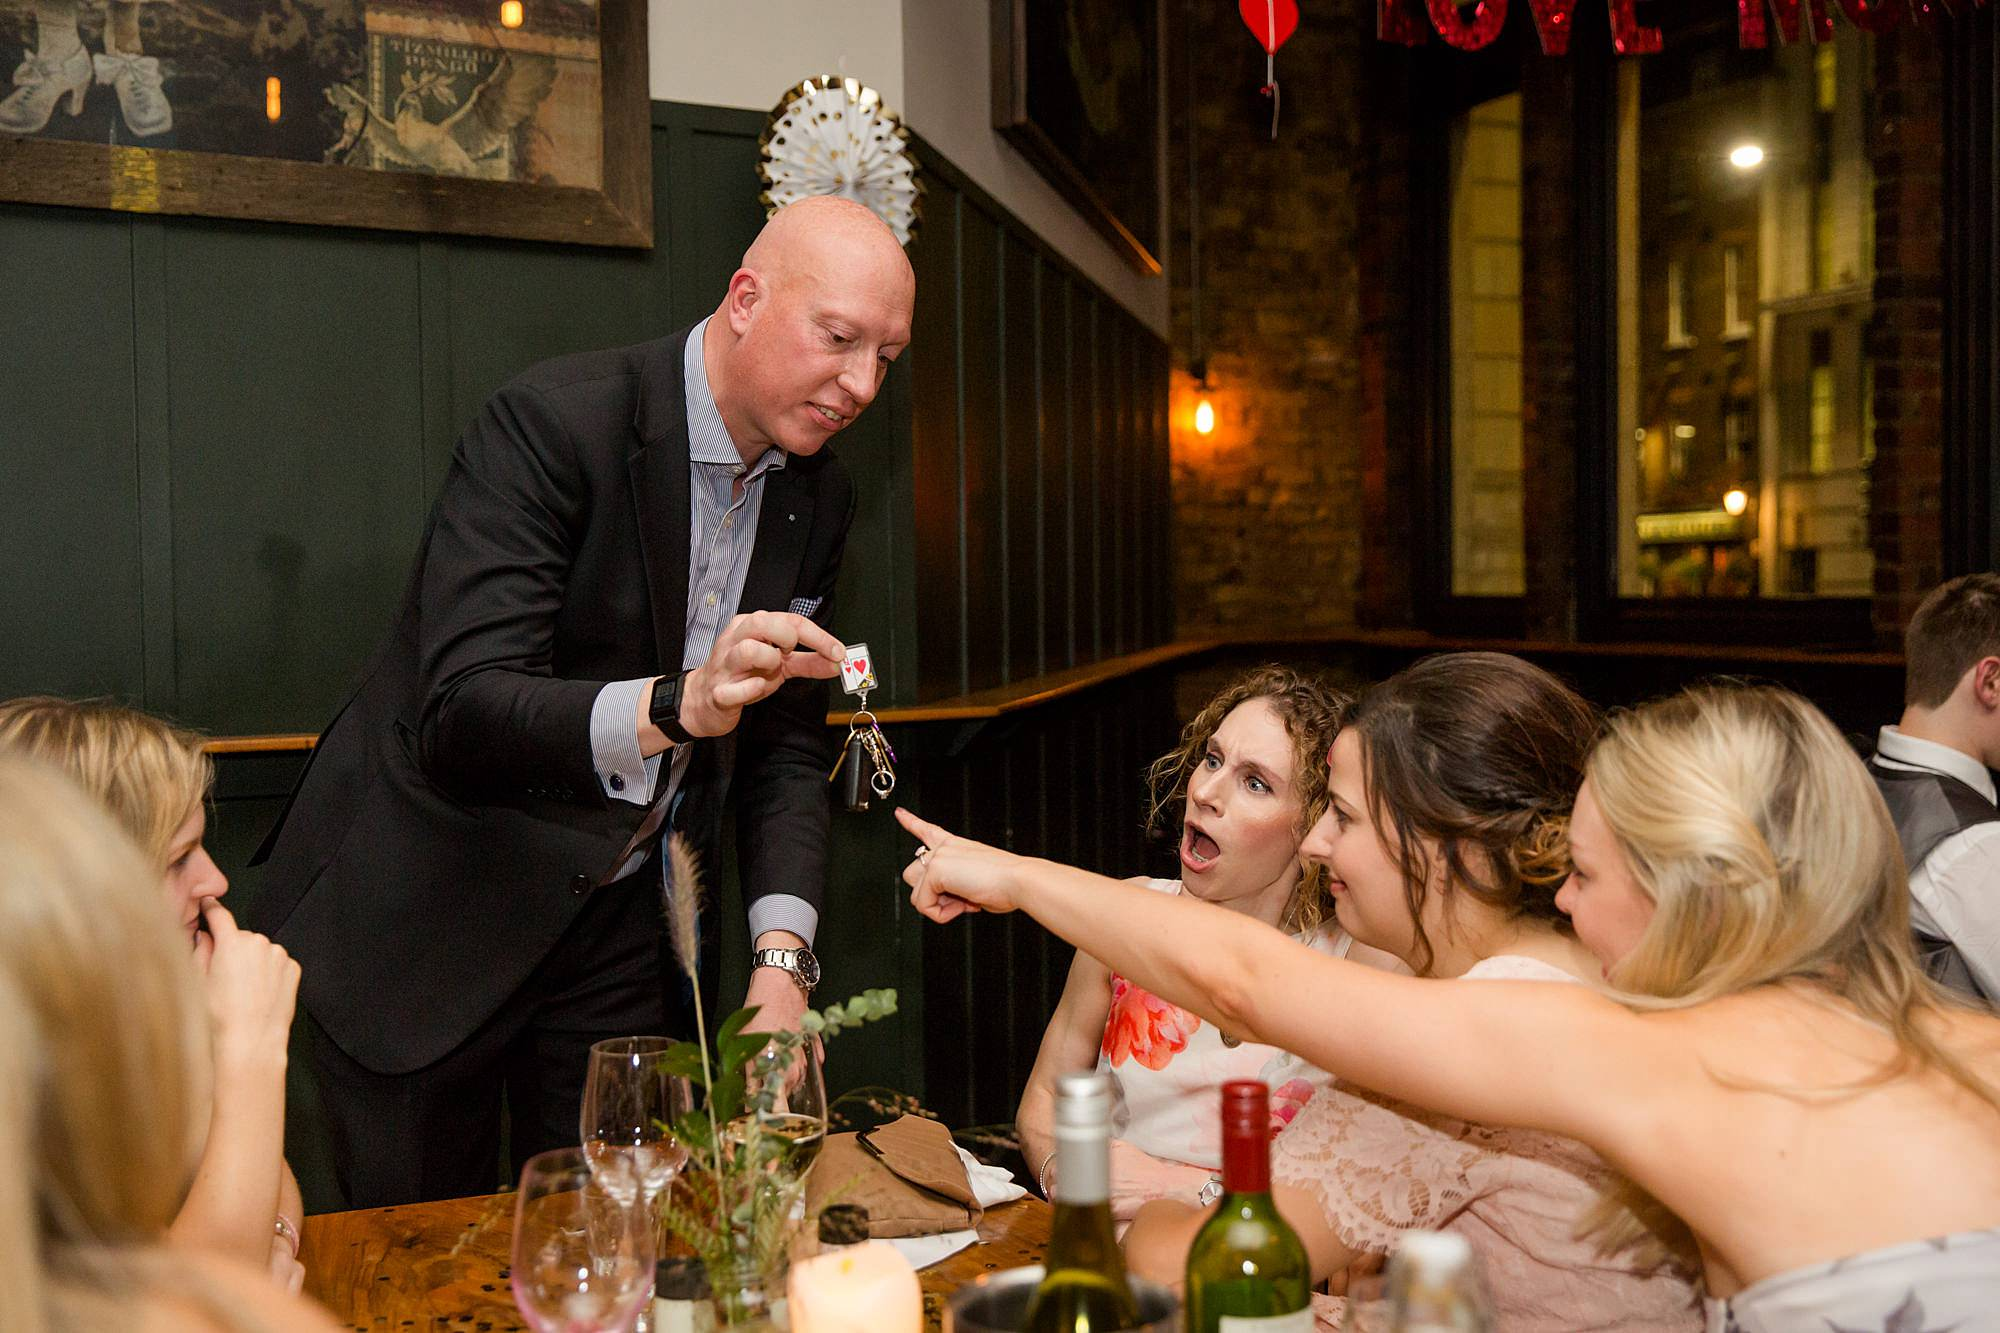 Harrild and sons wedding magician performs for guests